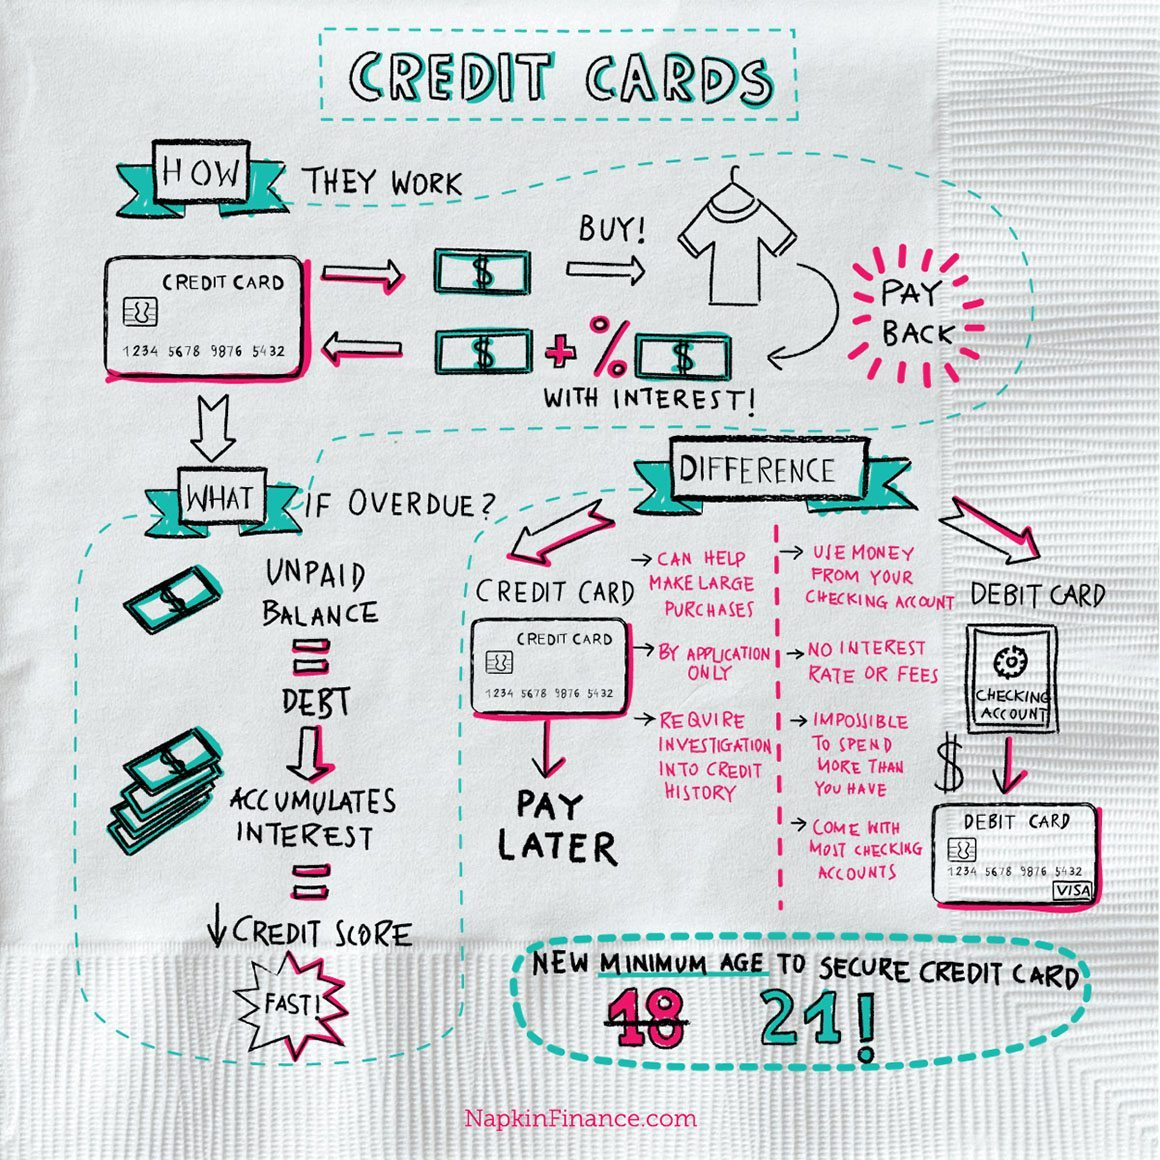 Credit card processing, Apply for a Credit Card, Credit Cards for Bad Credit, How to Get a Credit Card, and Best Credit Card Rewards